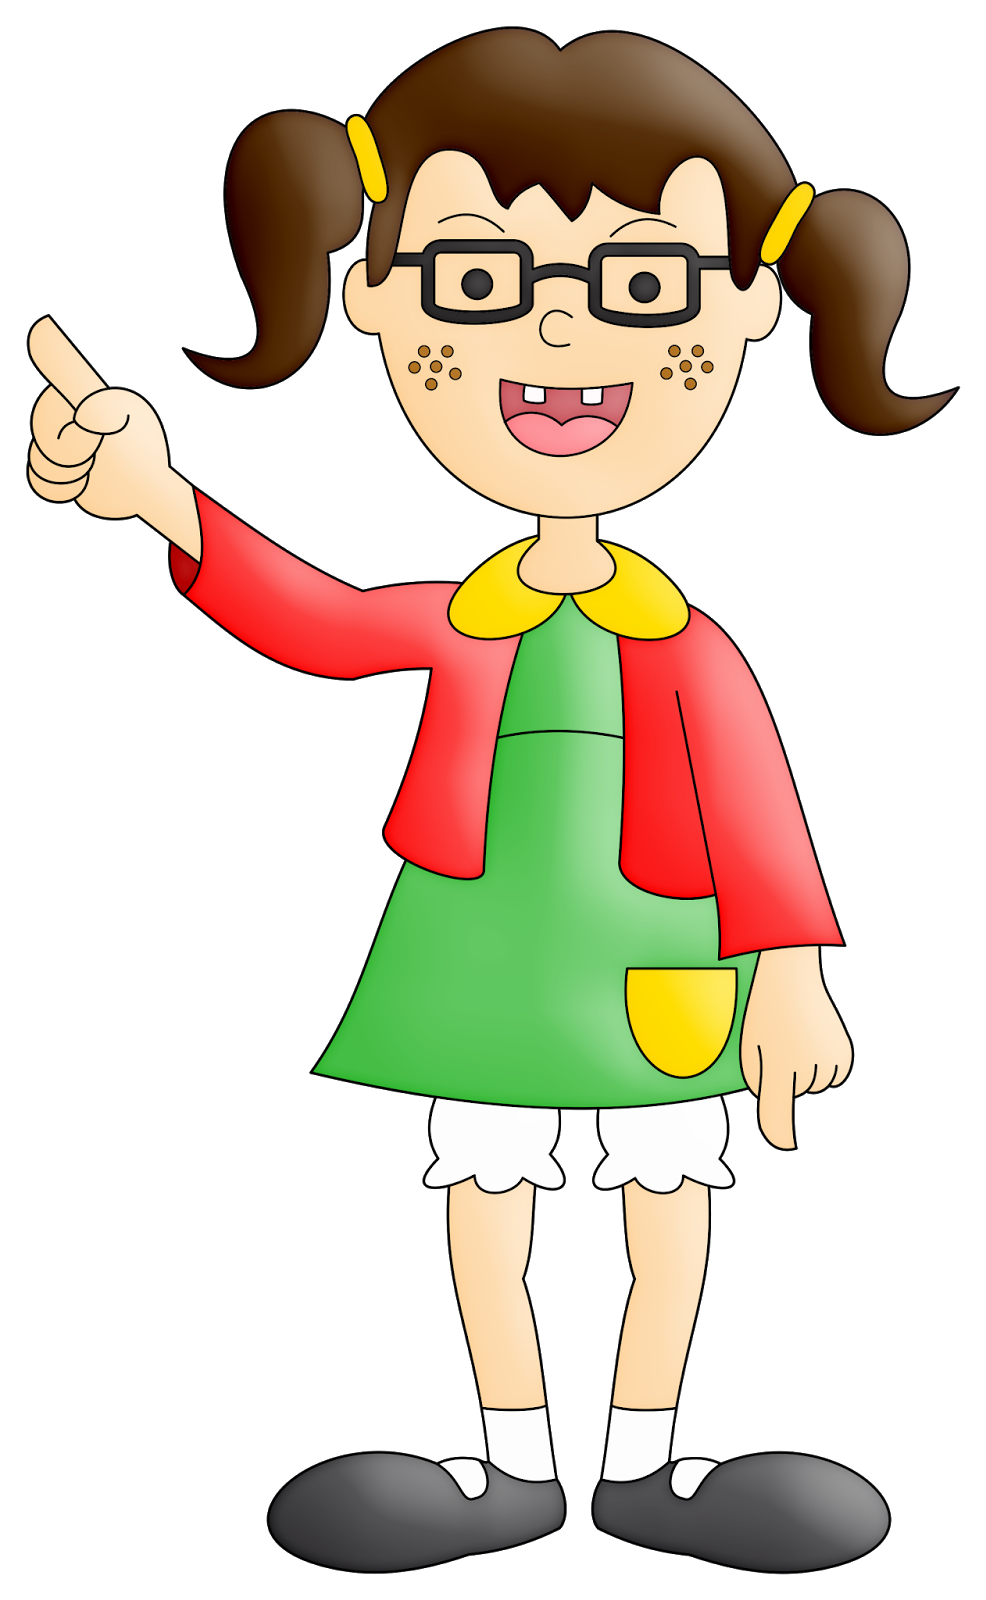 Chavo Del 8 Clipart Oh My Fiesta In English